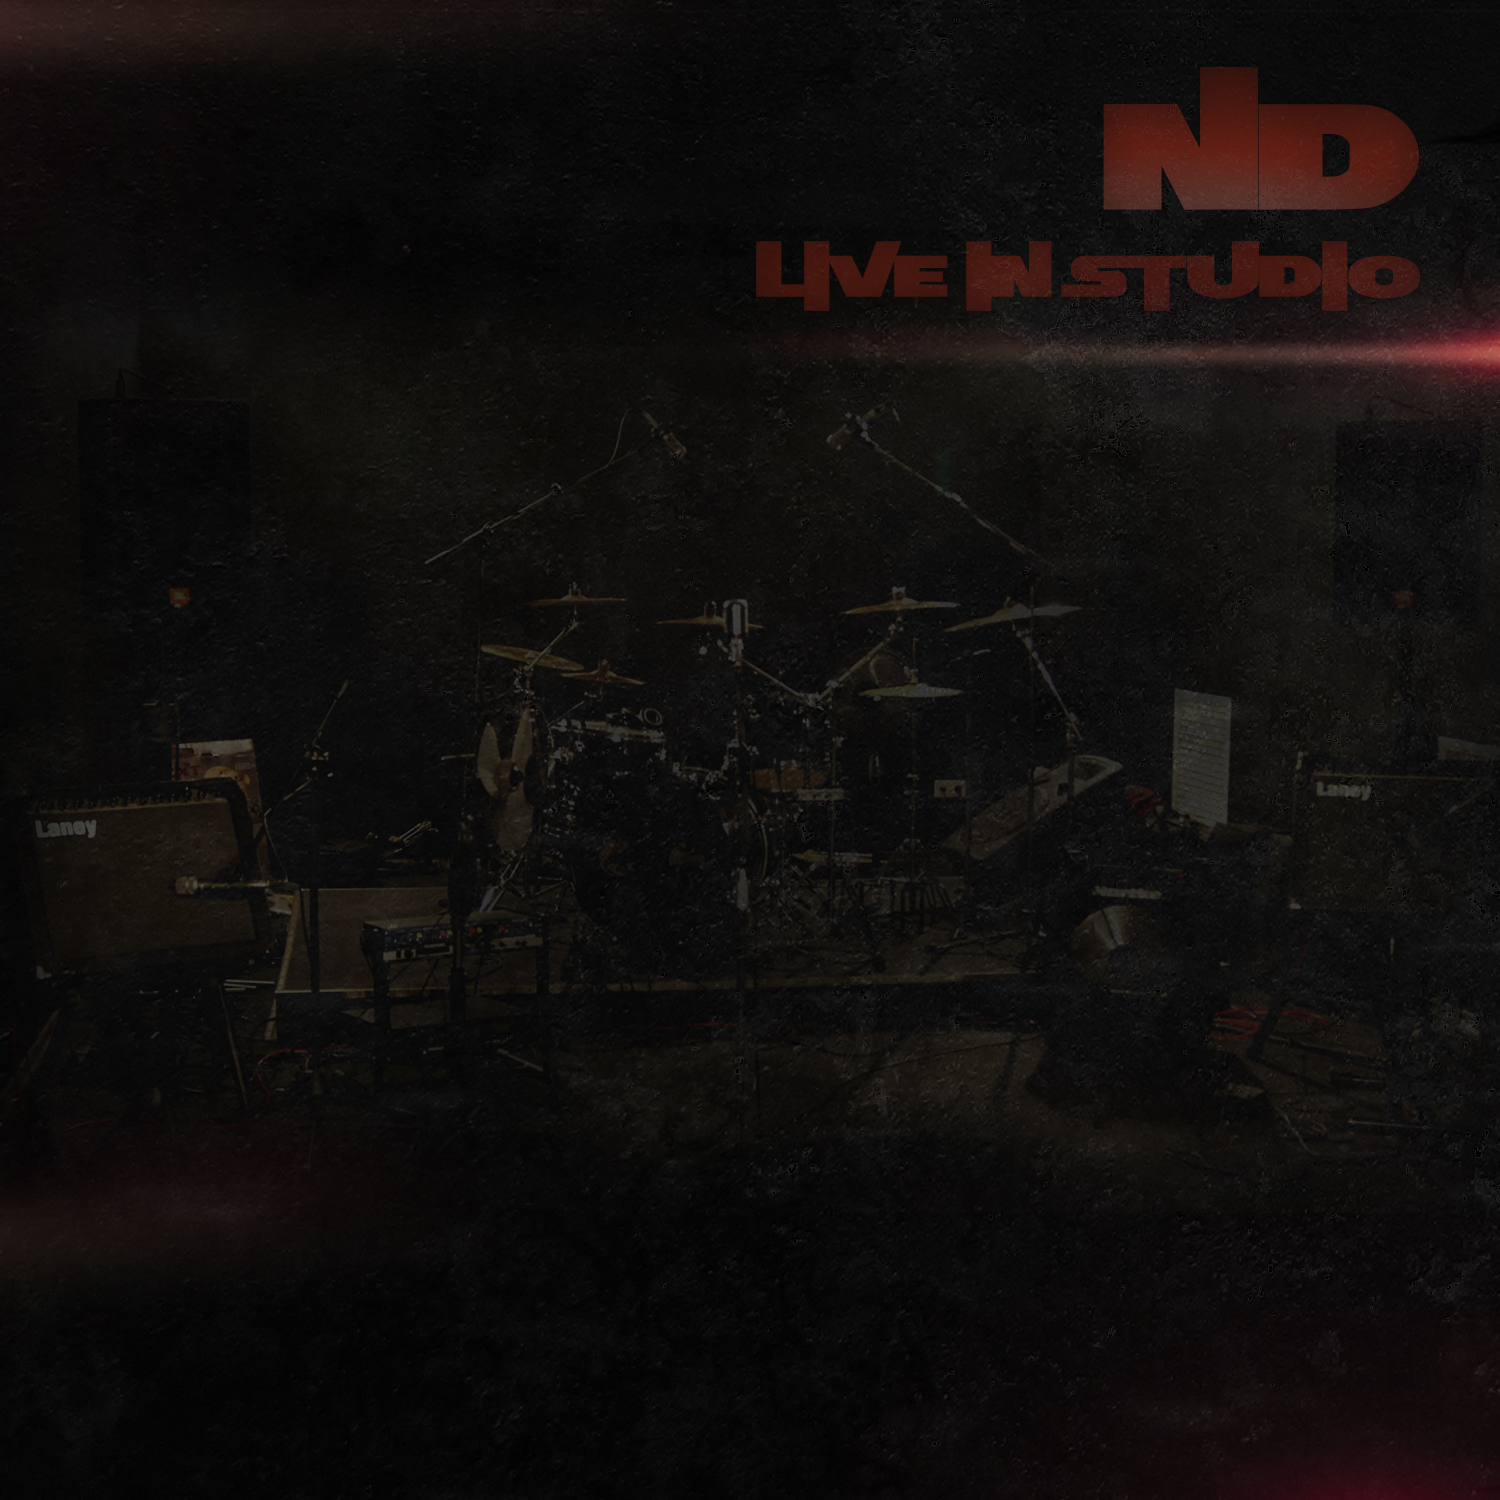 ND -«Live in Studio» (с) 2017